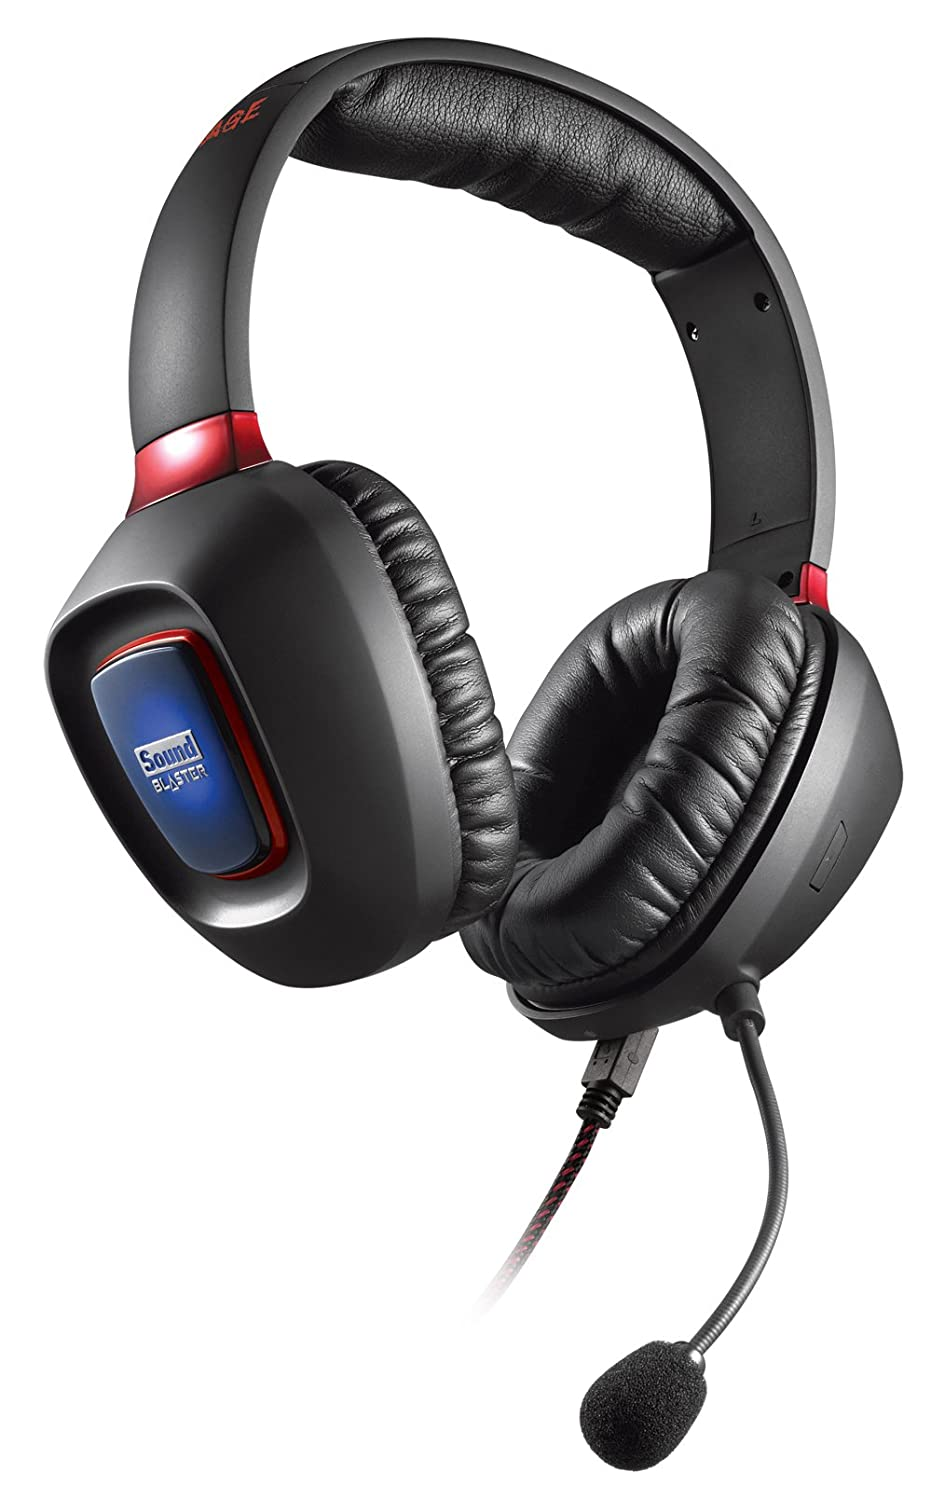 Riedel Headset Wiring Diagram Free Download Usb Headphone Creative Sound Blaster Tactic3d Rage Gaming With Sbx Additionally Iphone As Well